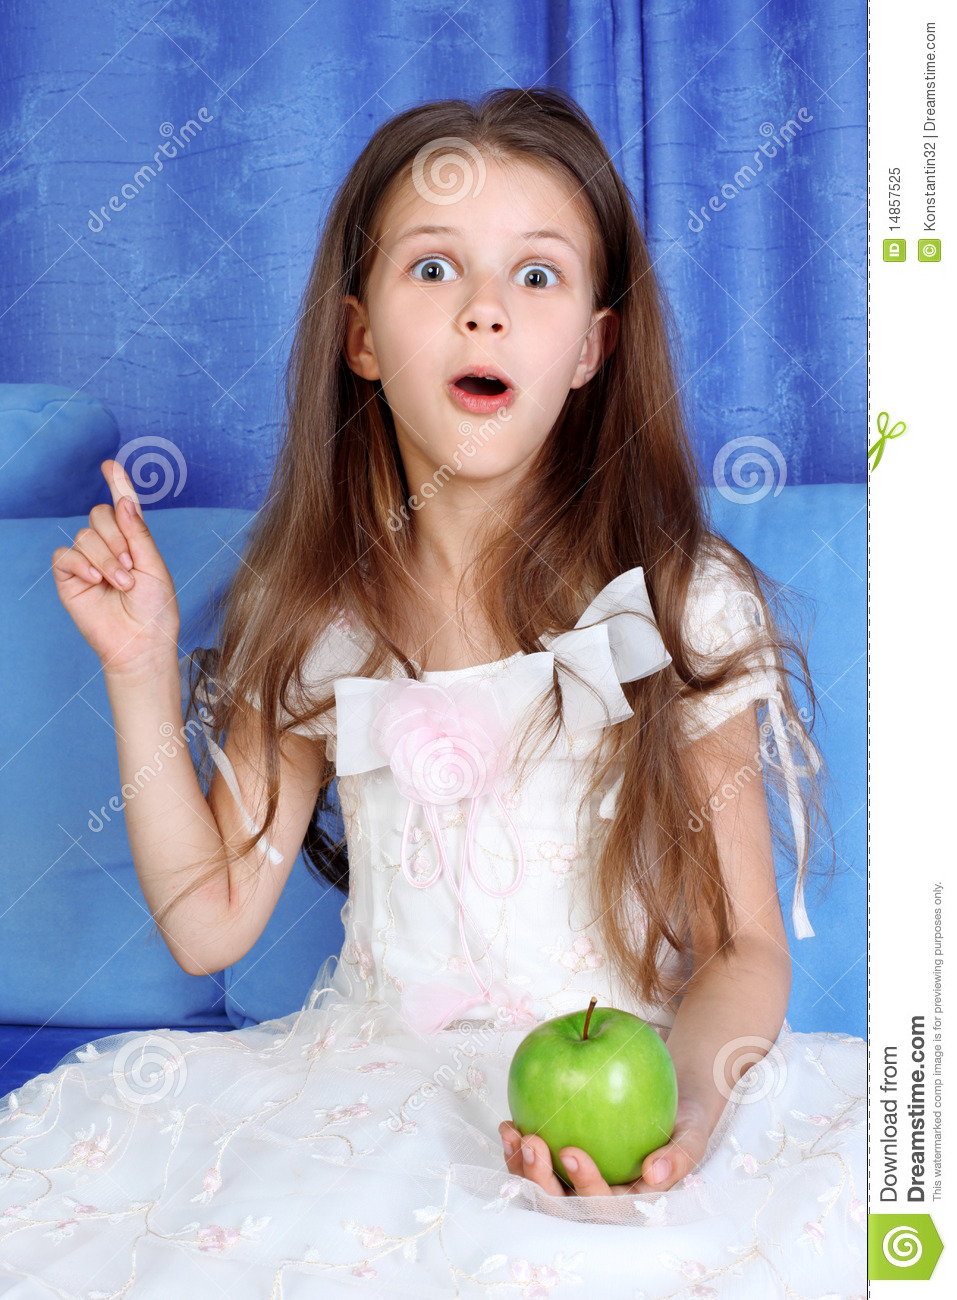 Surprised girl with apple